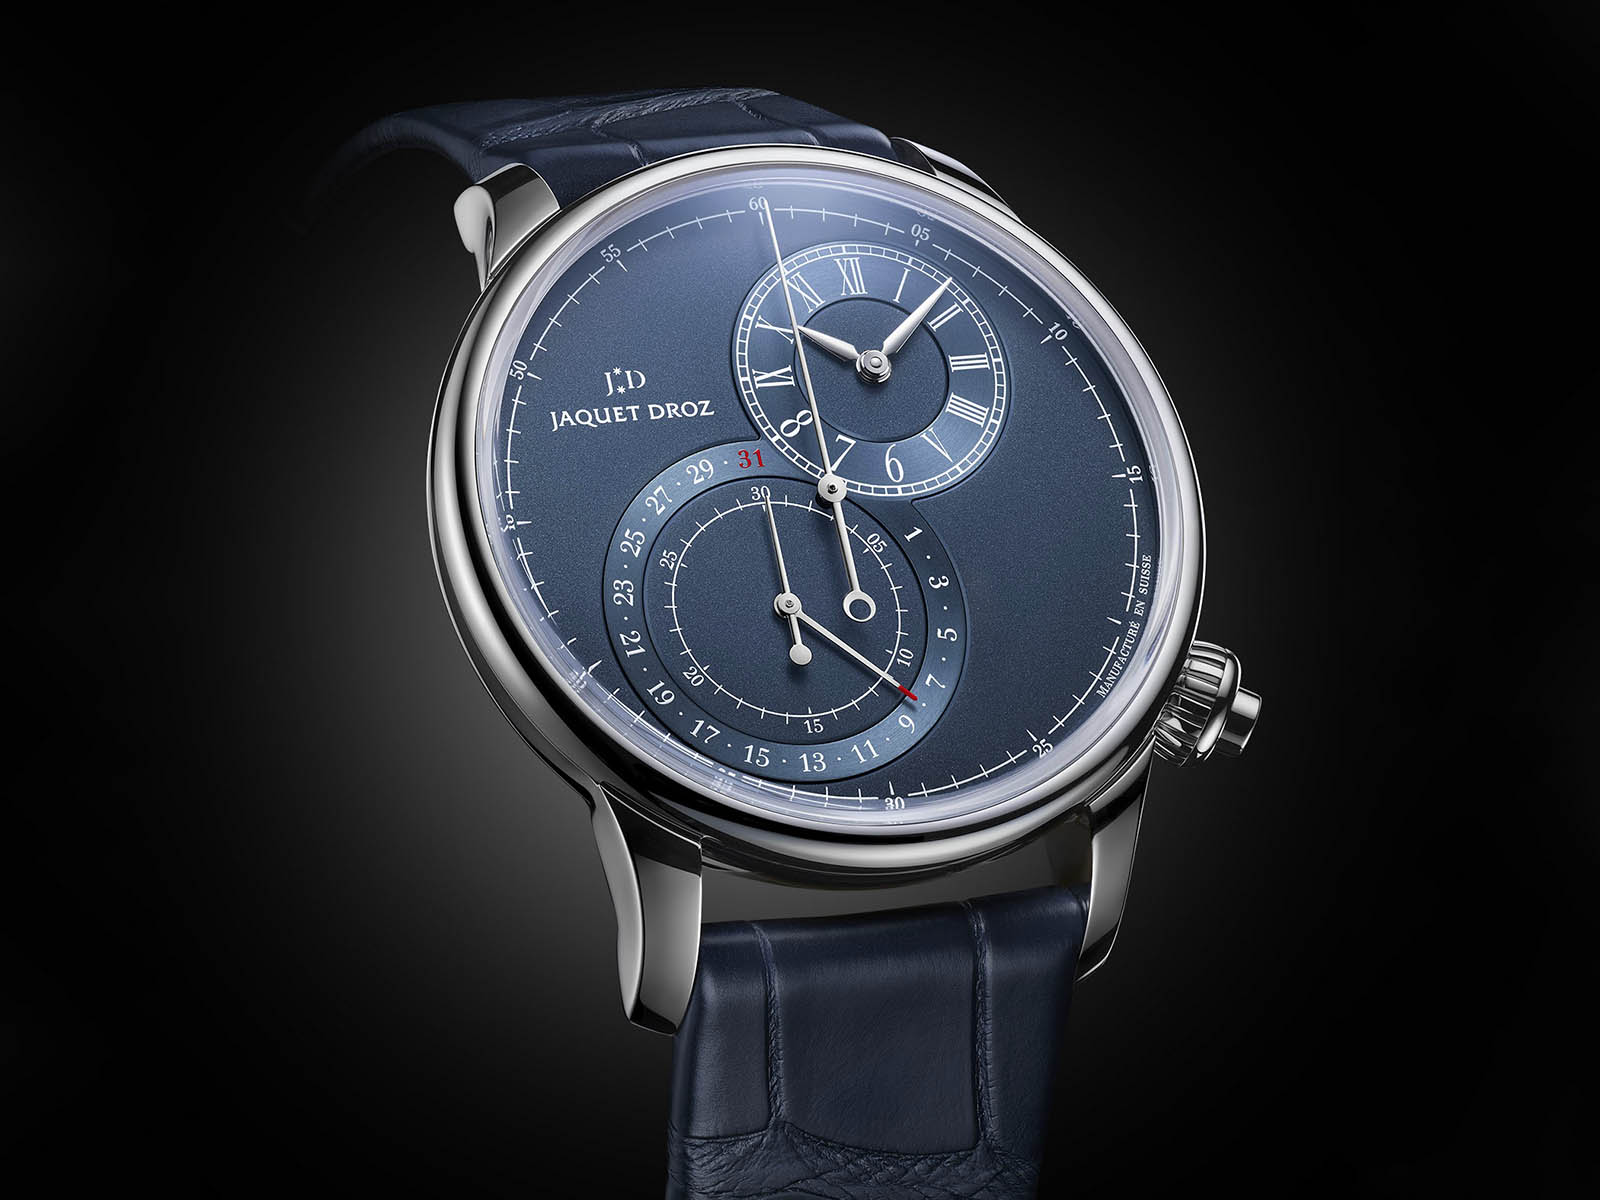 j007830241-jaquet-droz-grande-seconde-chronograph-blue-3.jpg